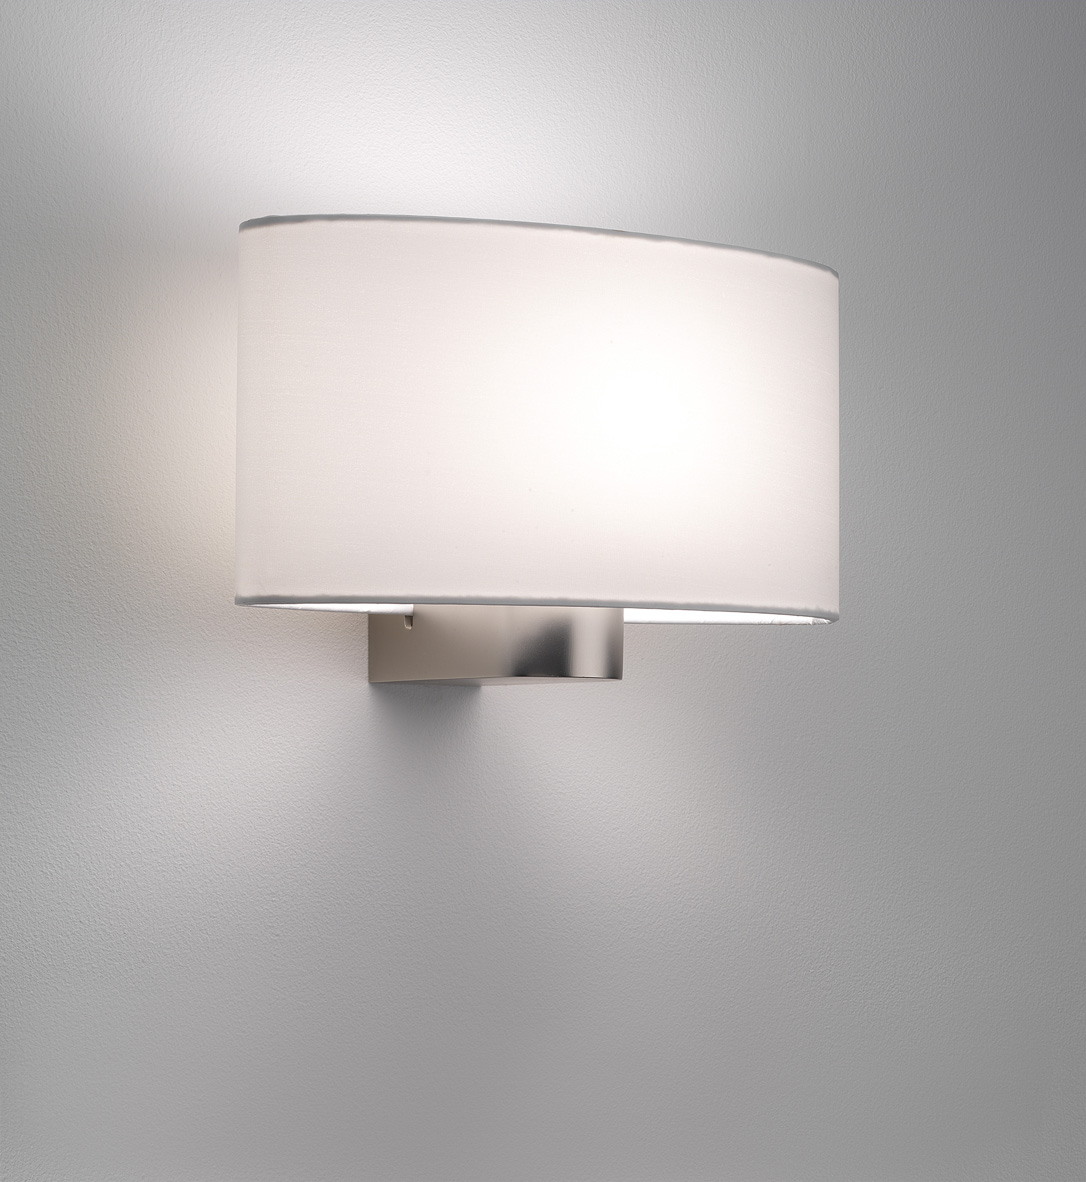 Wall Lamp With Shades : Modern Wall Lamp Shades www.pixshark.com - Images Galleries With A Bite!